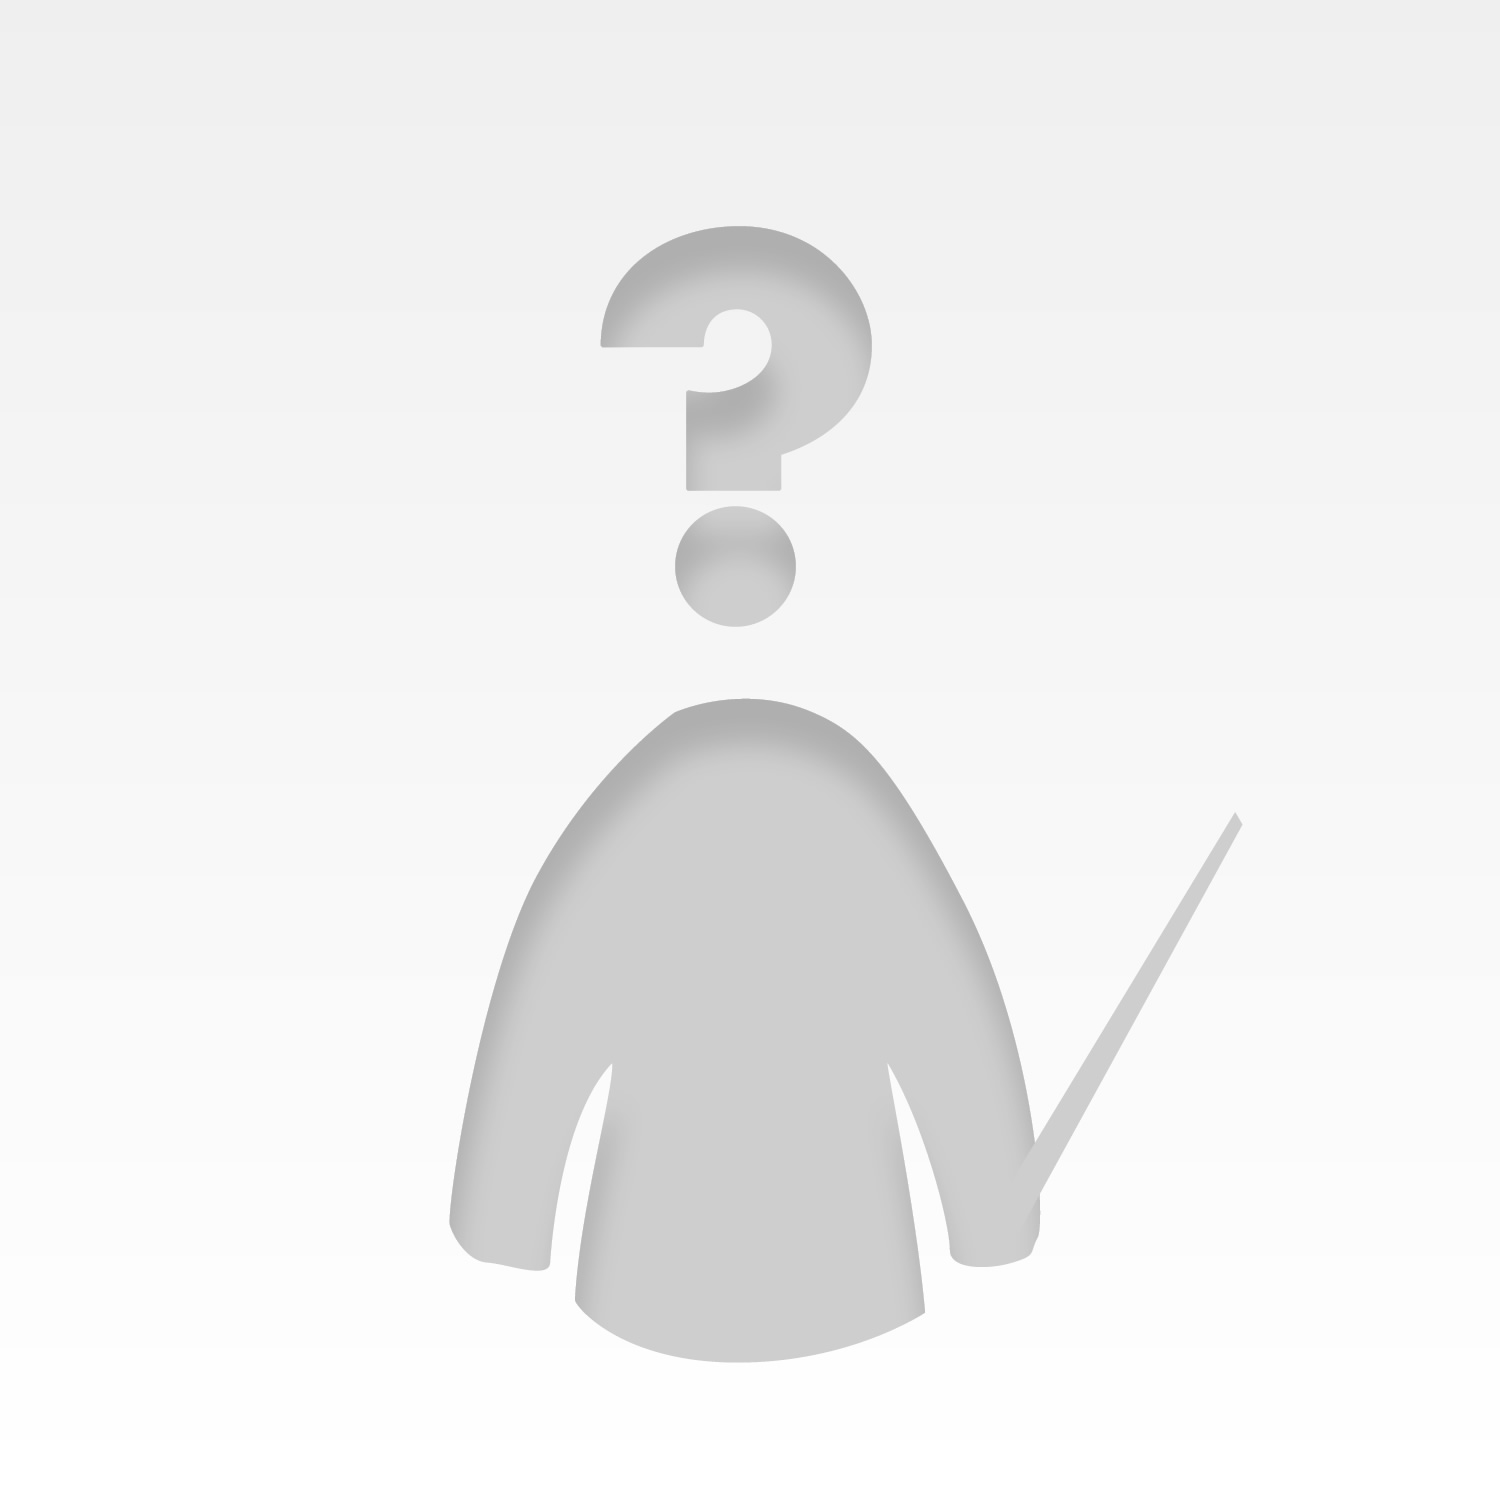 wisel\'s avatar